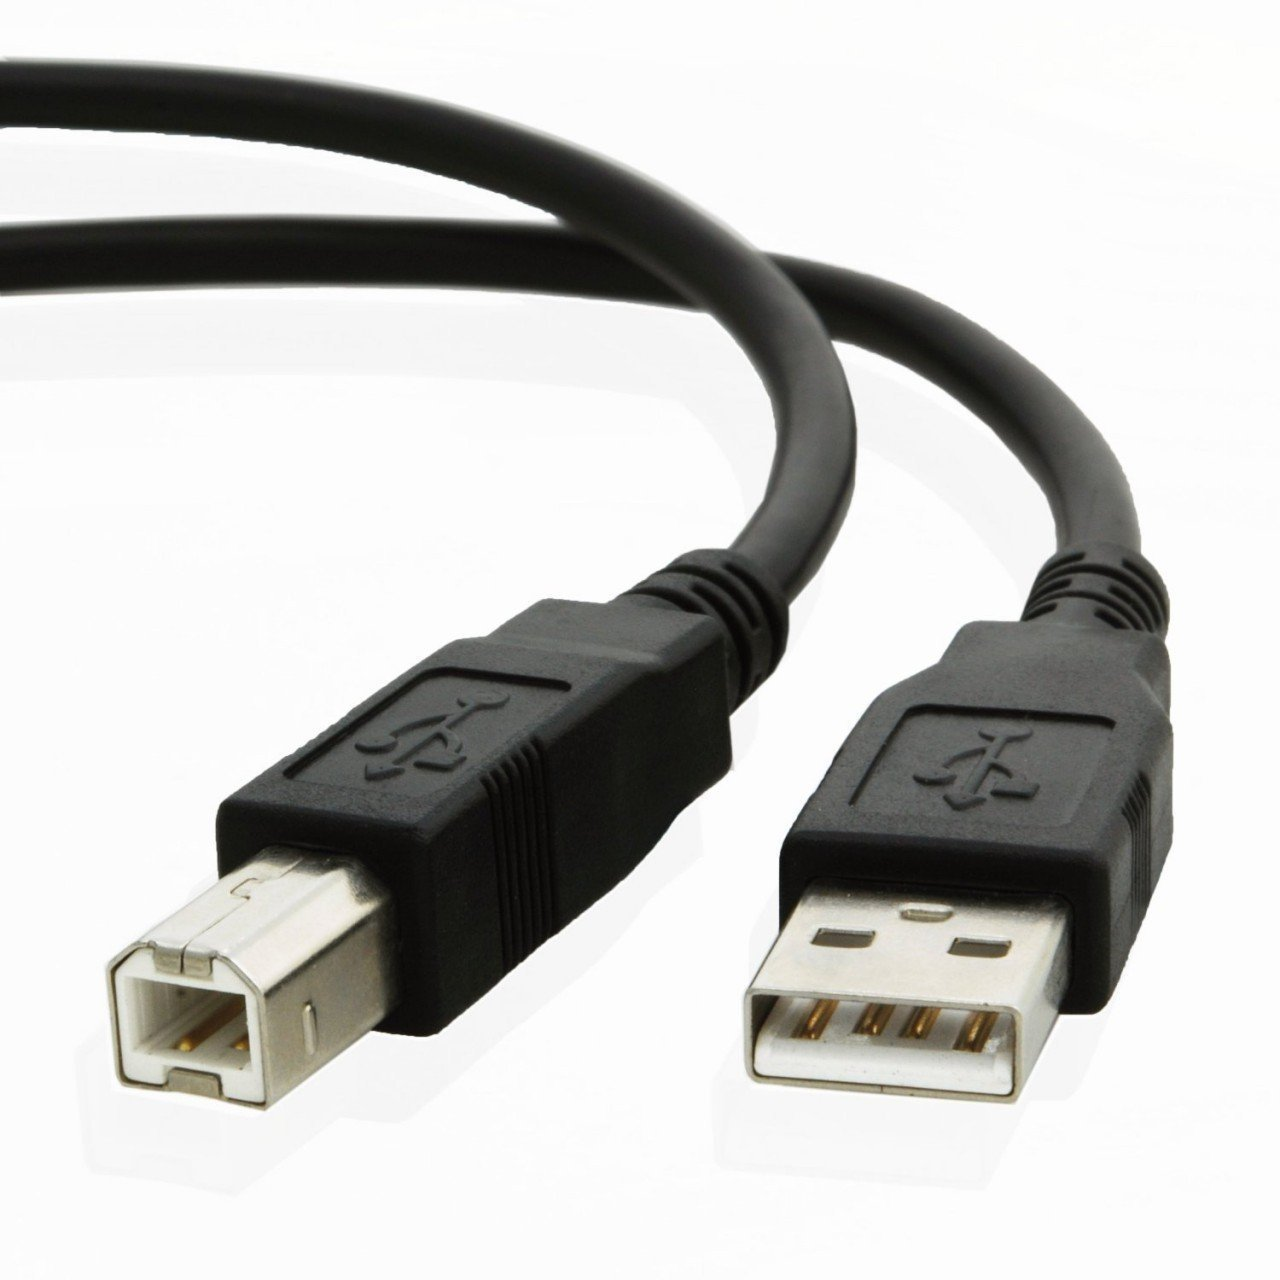 USB cable for Epson COLOR 760